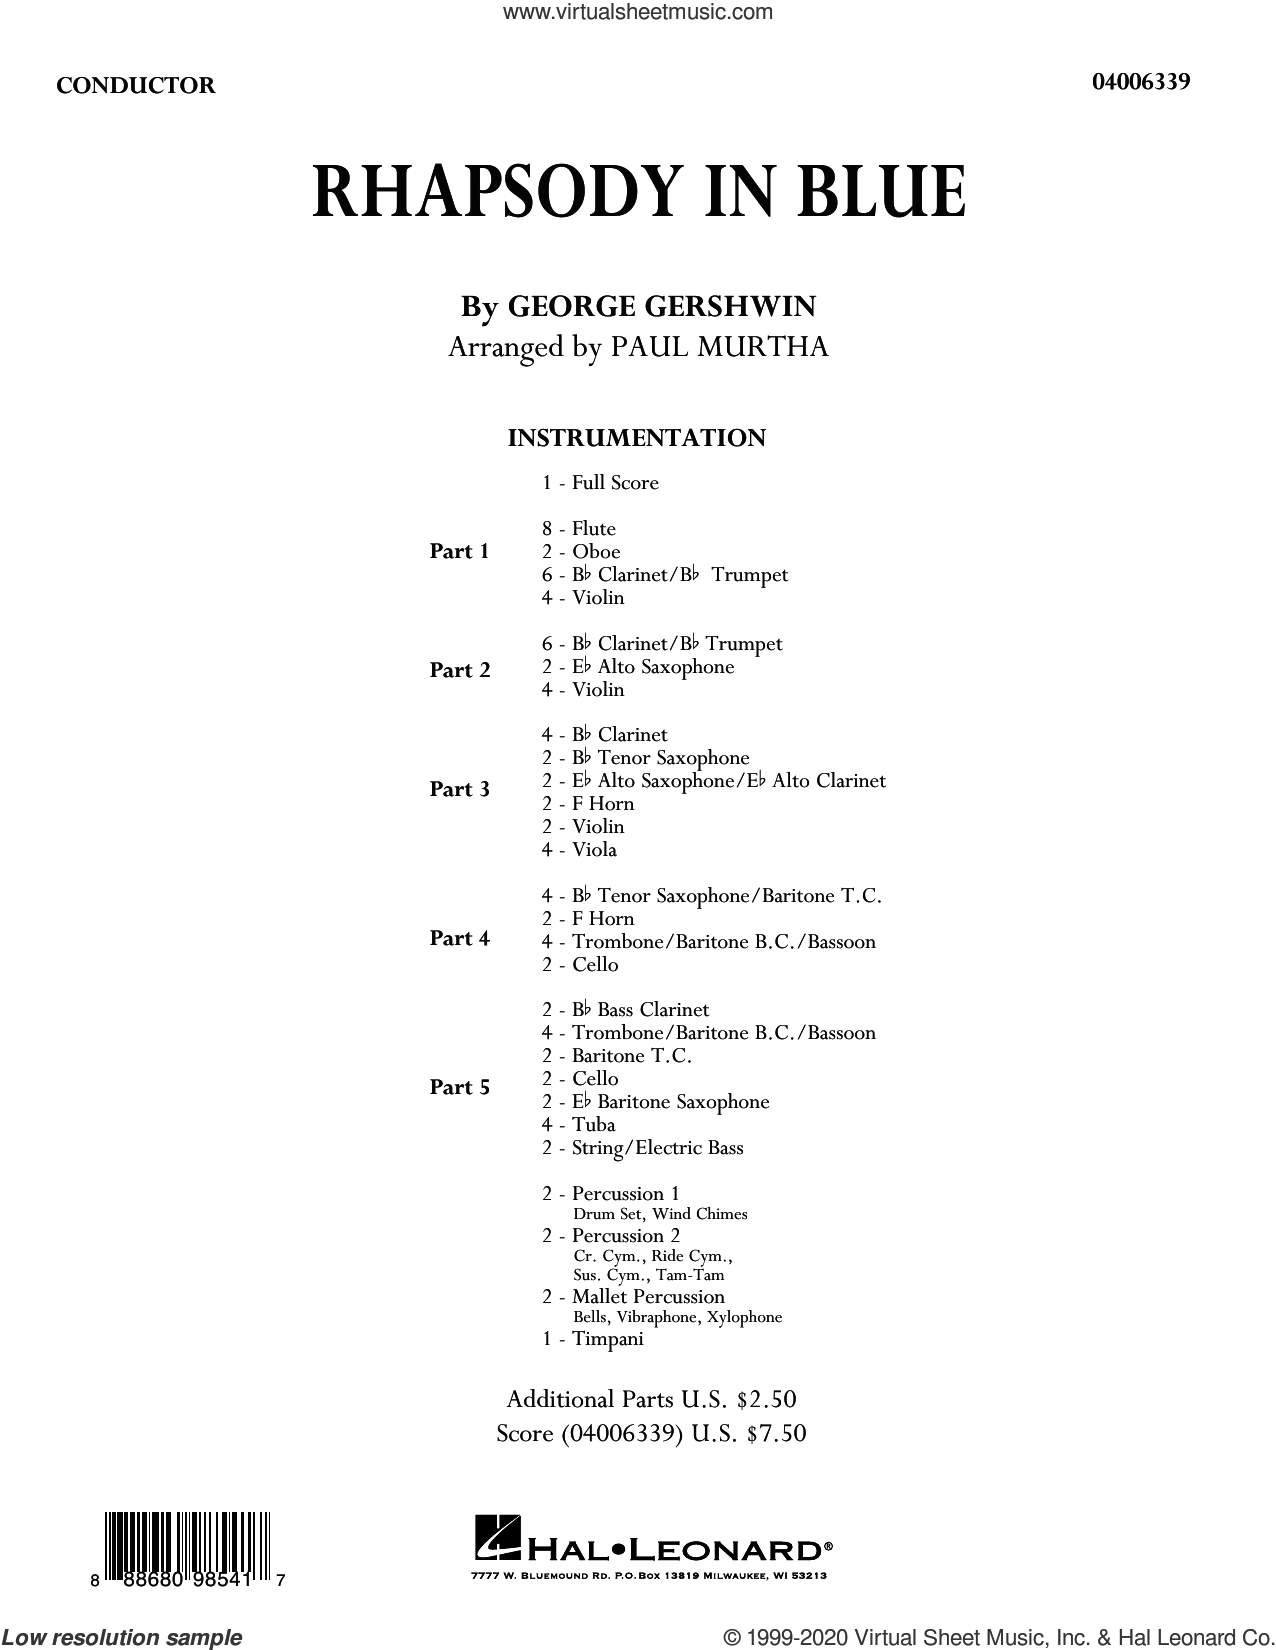 Rhapsody in Blue (arr. Paul Murtha) (COMPLETE) sheet music for concert band by George Gershwin and Paul Murtha, intermediate skill level